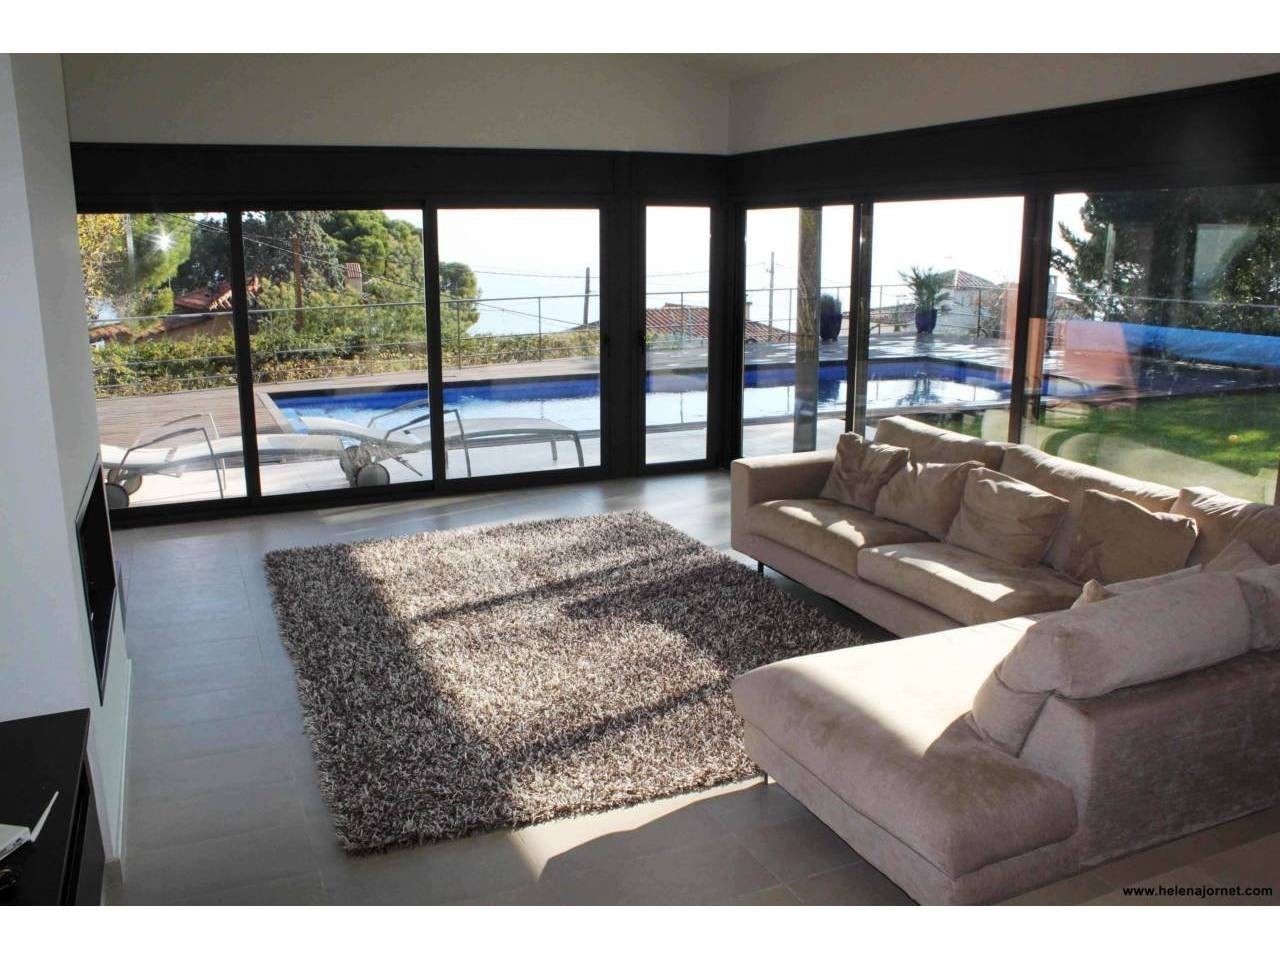 Exclusiva casa en Sant Elm con unas vistas al mar espectaculares - 2895